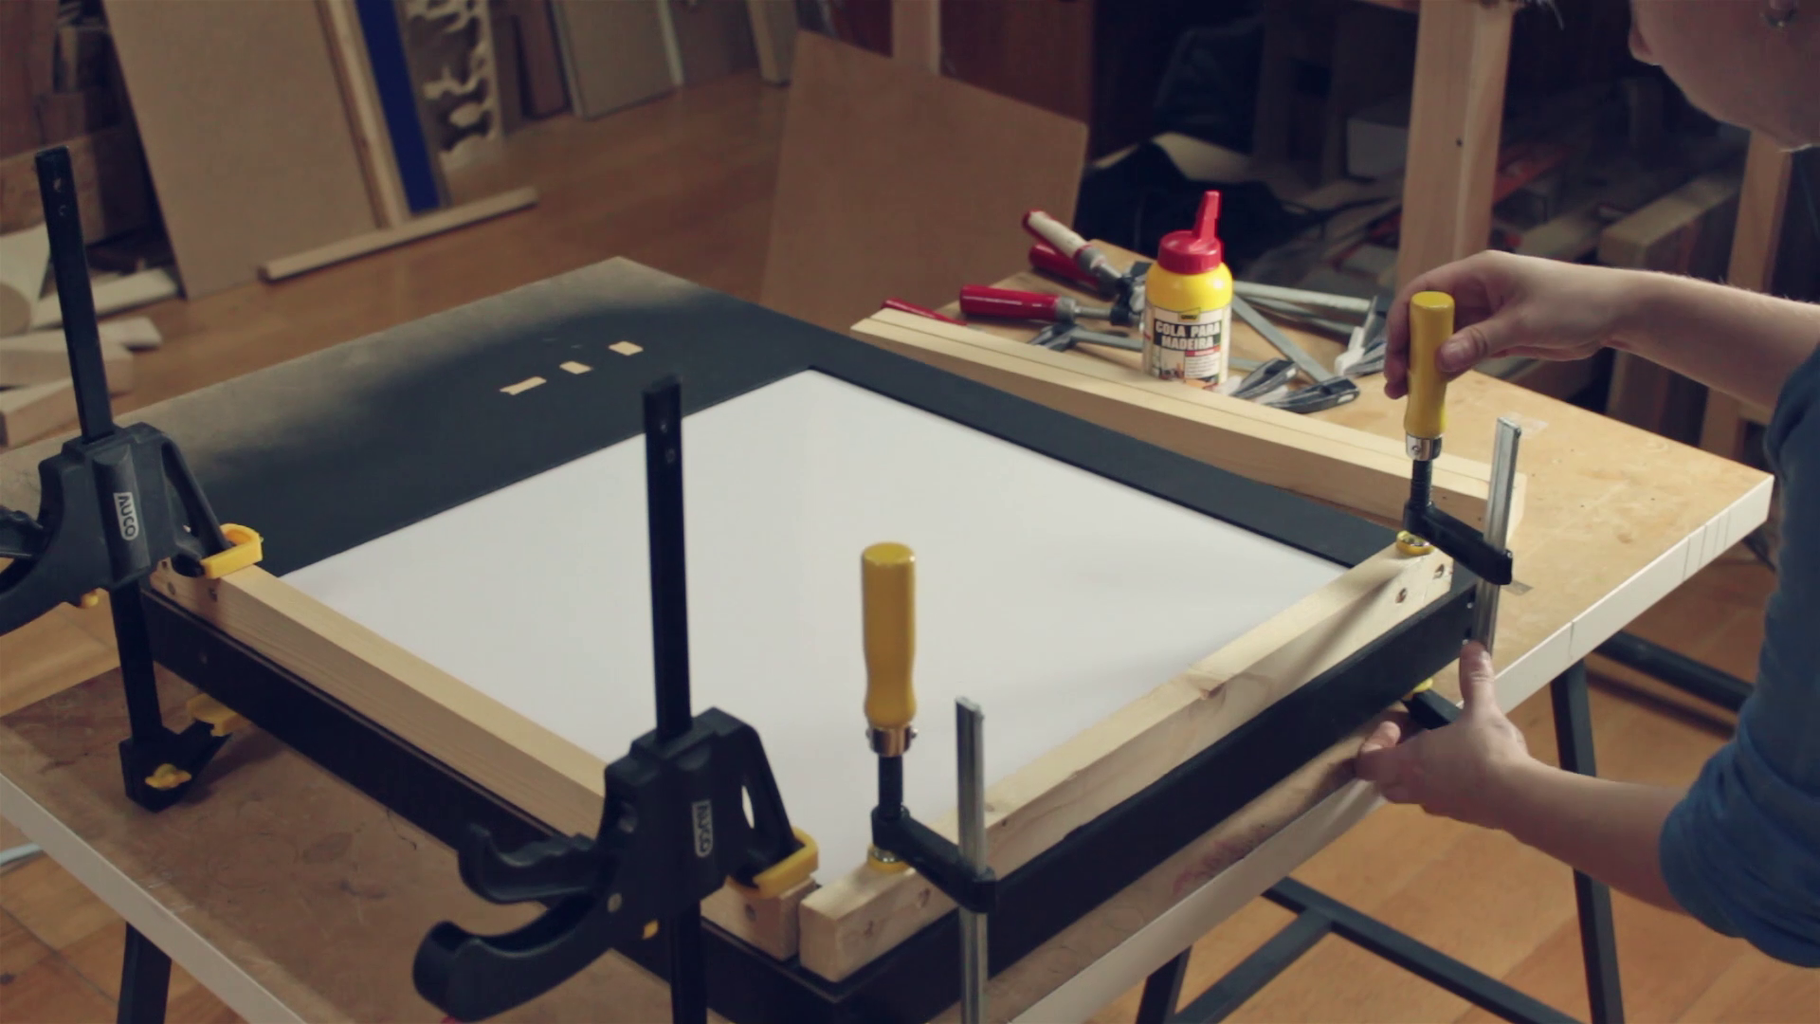 Enclose the Acrylic Sheet and Prepare the Frame to Receive a Switch